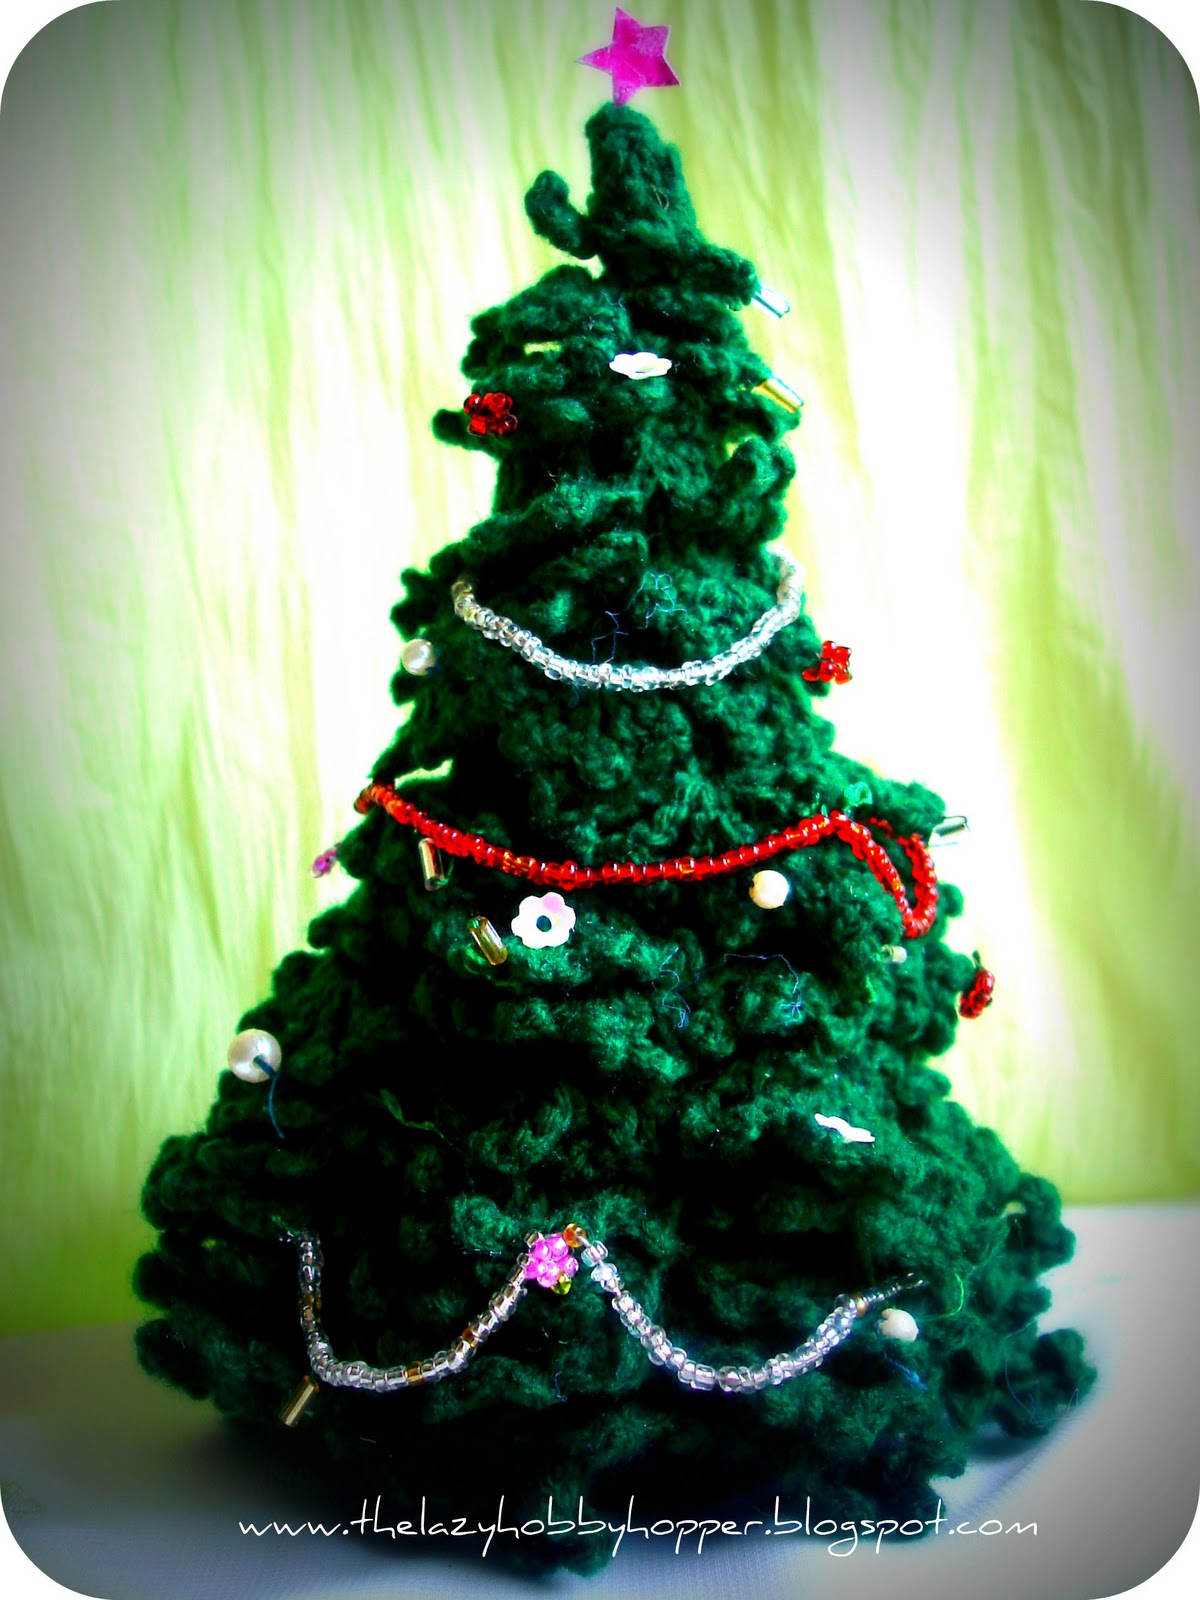 Free crochet christmas tree hat dancox for gallery for crochet christmas tree hats bankloansurffo Choice Image